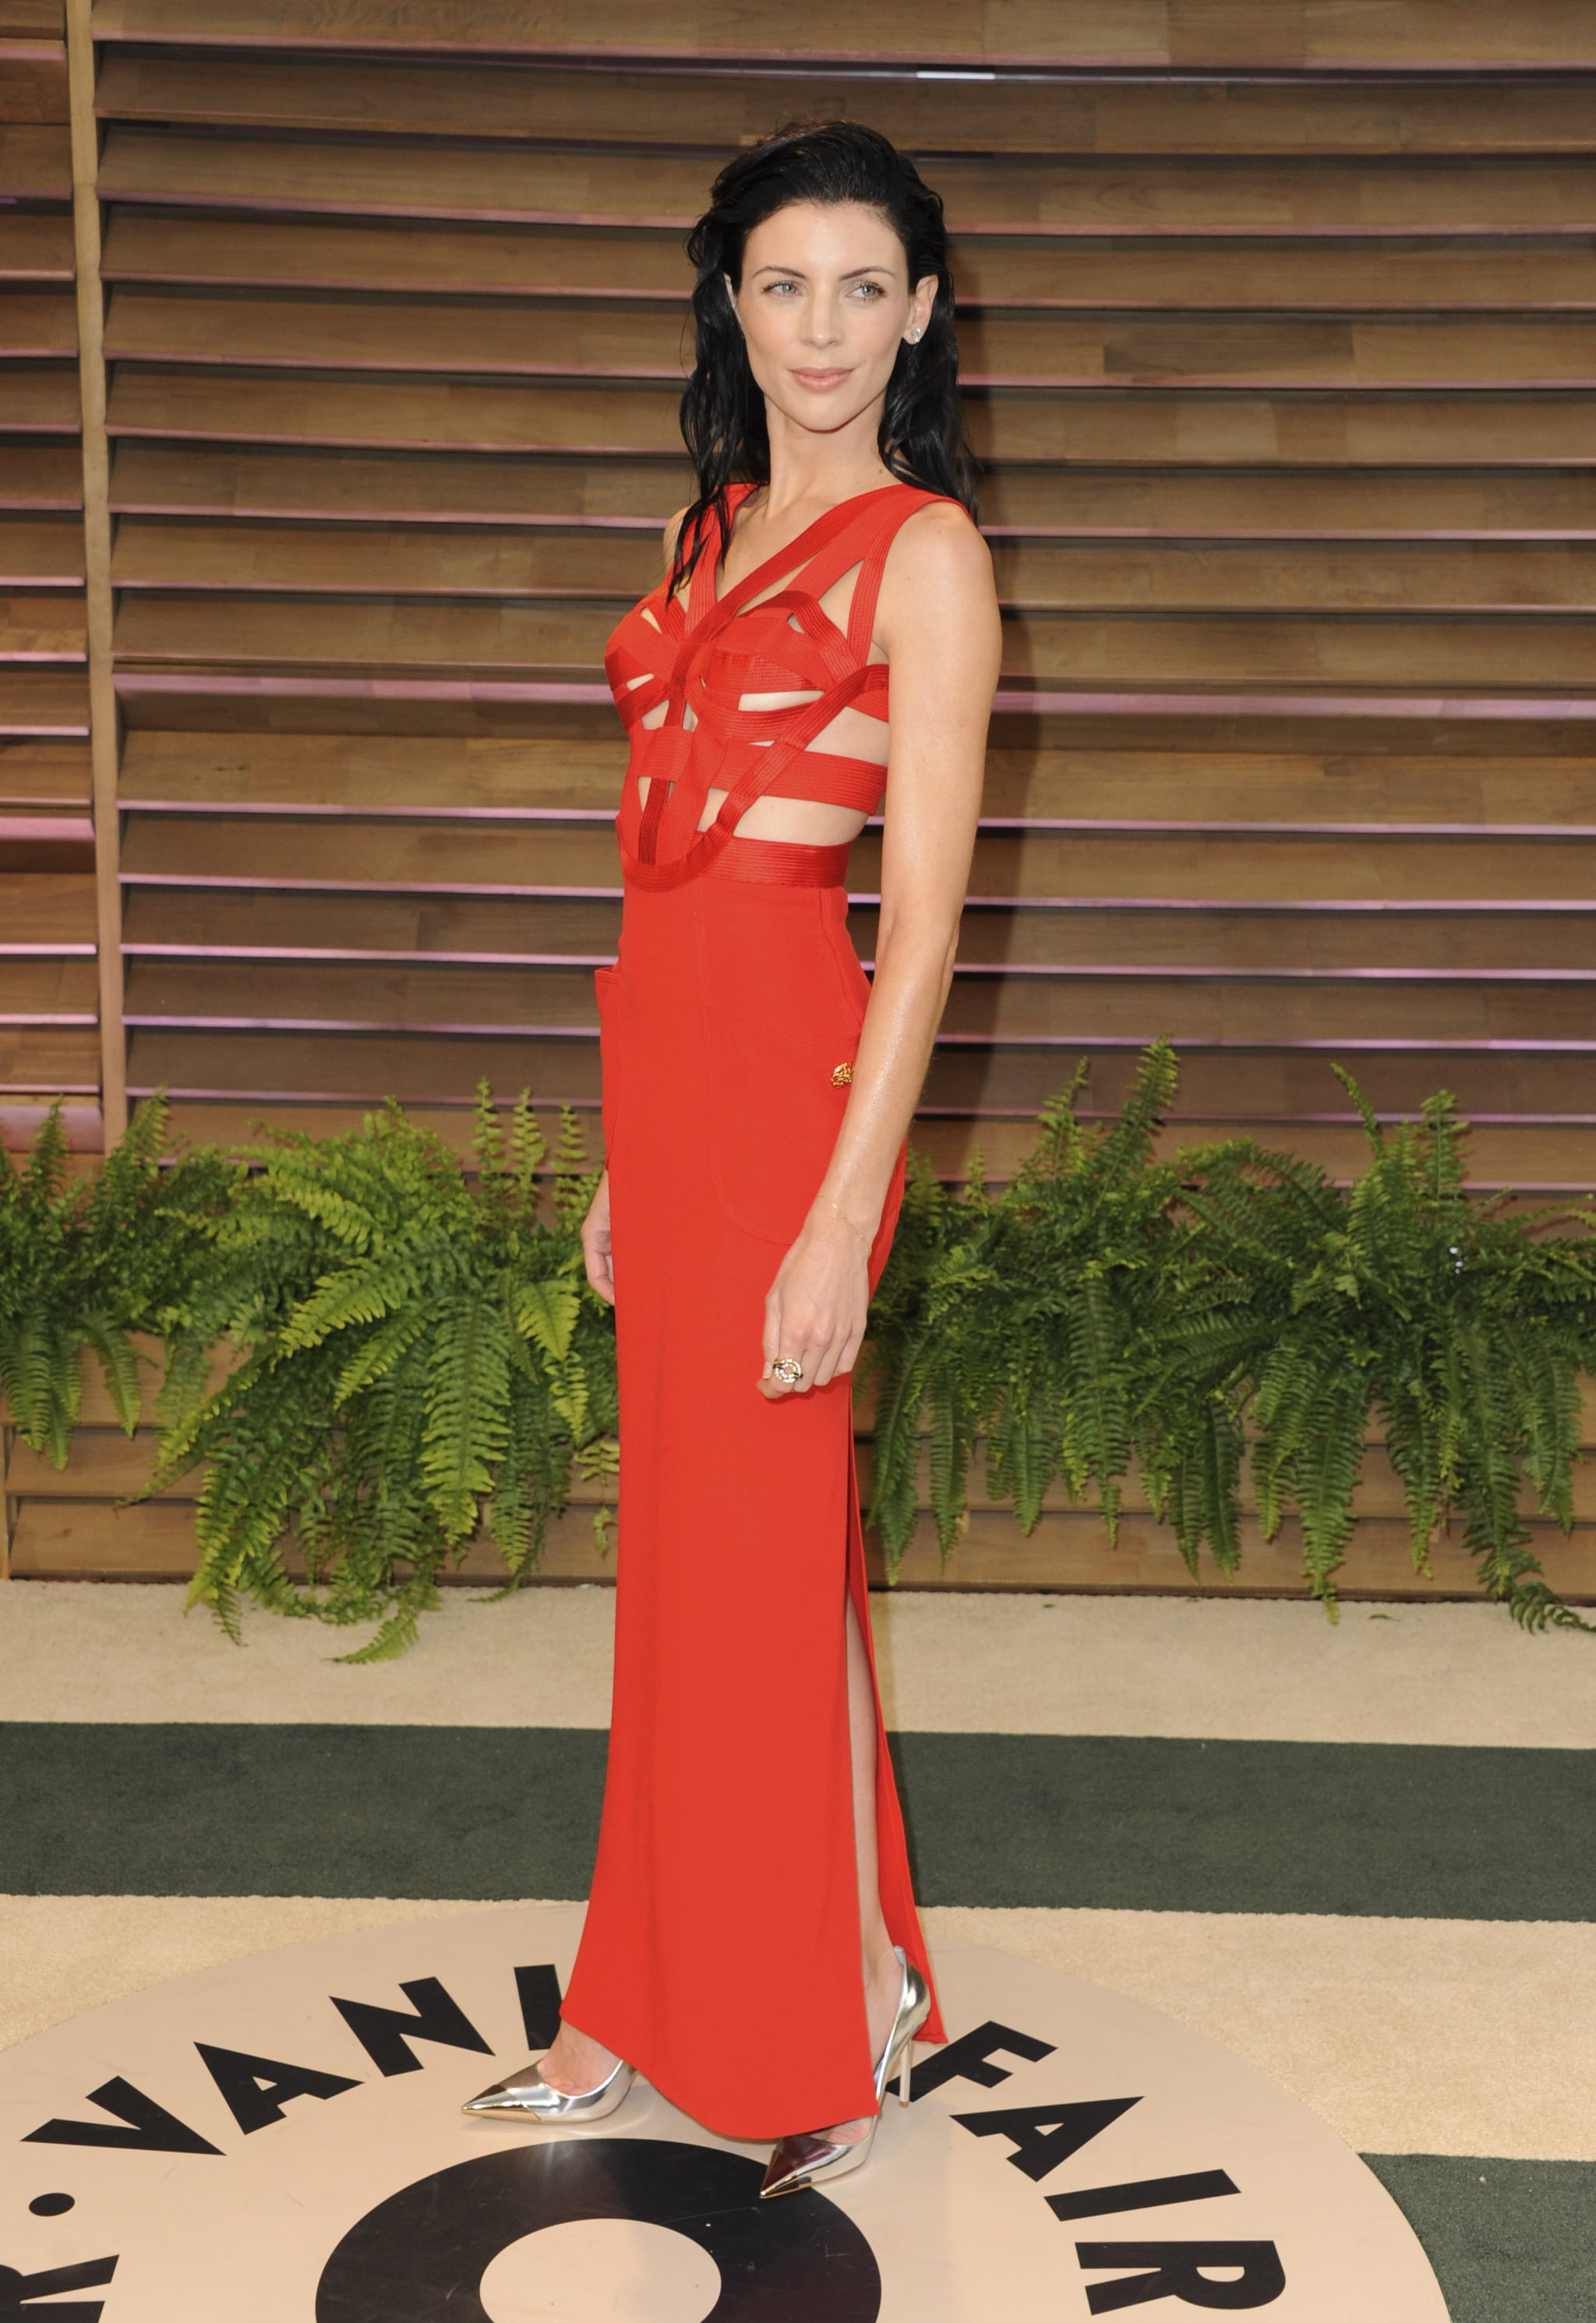 Liberty Ross at the 2014 Vanity Fair Oscars Party